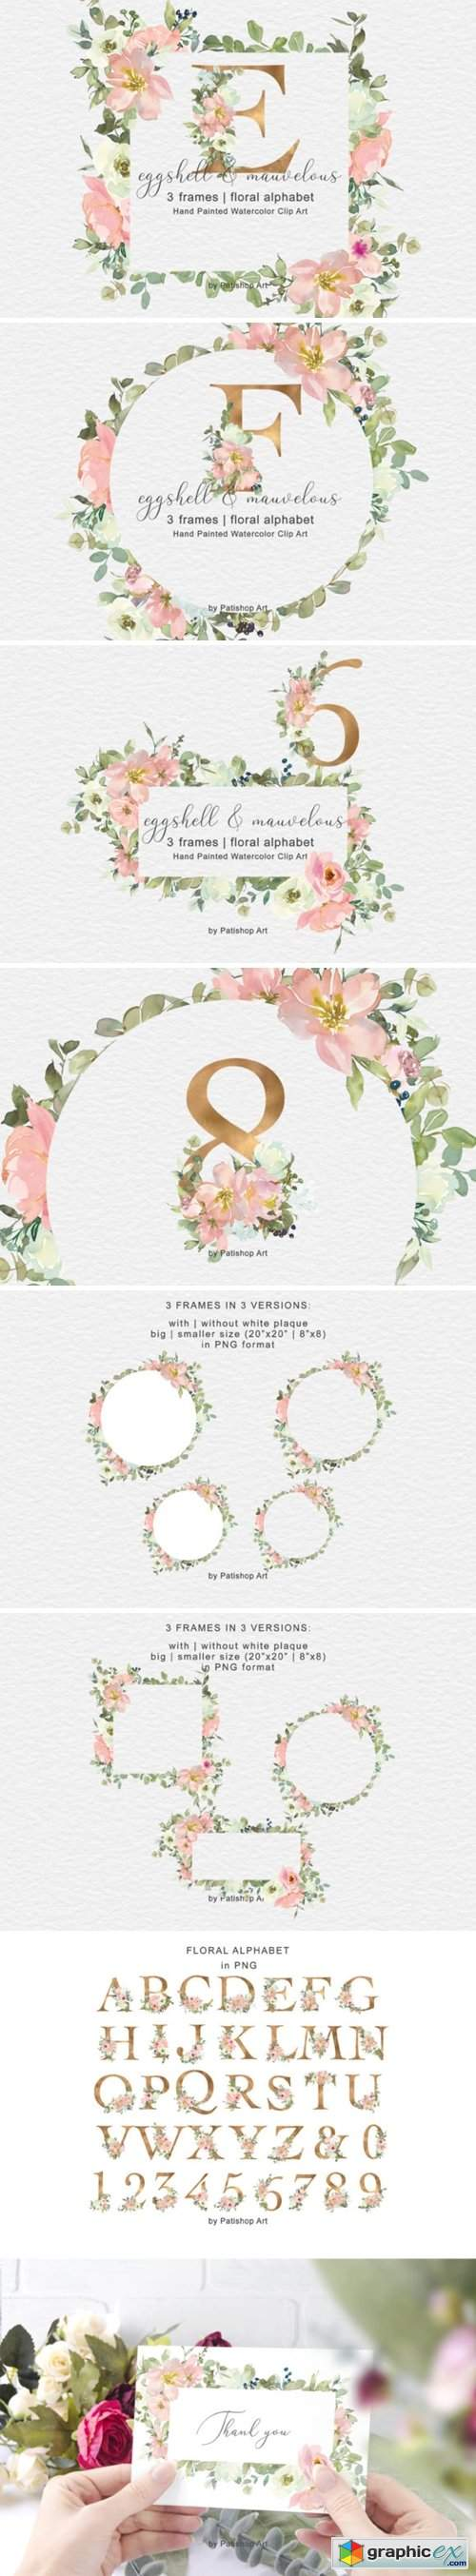 Watercolor Floral Frames and Alphabet